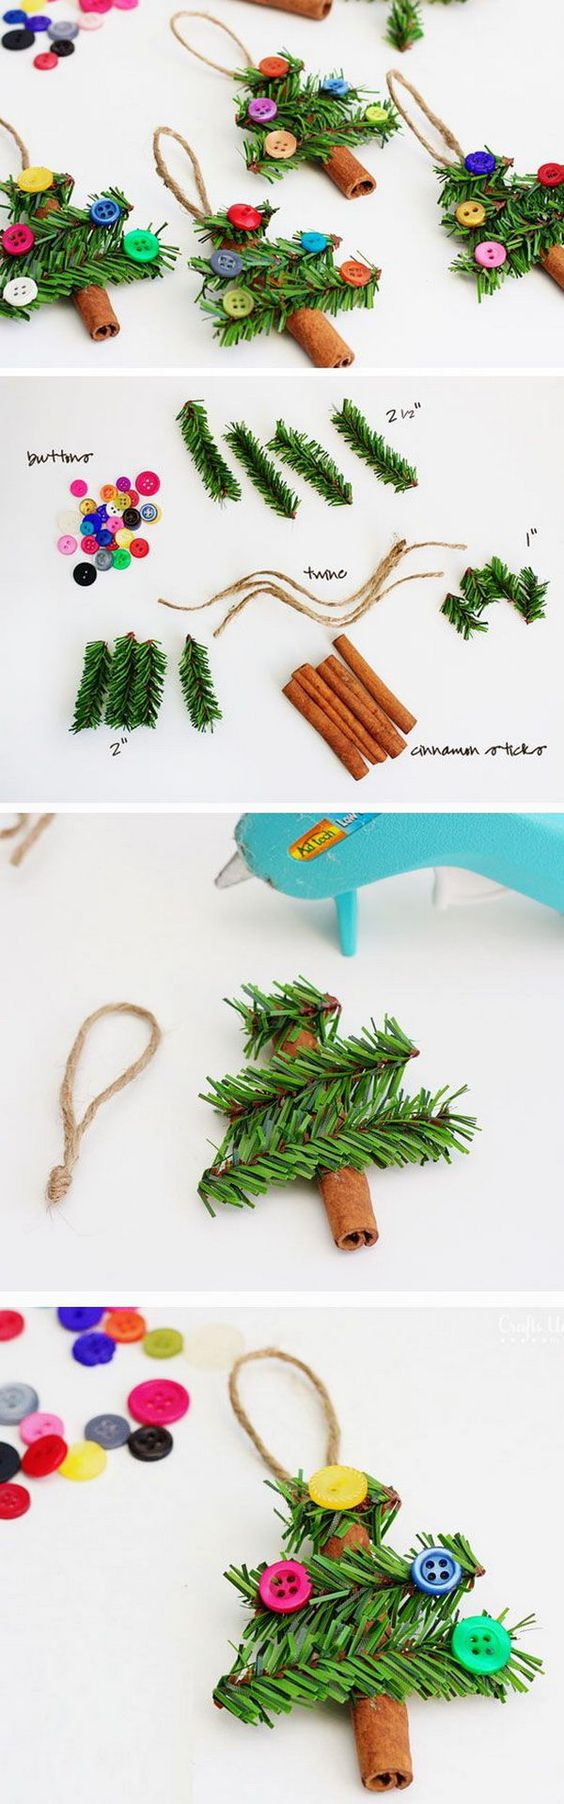 DIY Cinnamon Stick Trees  Ornaments  .